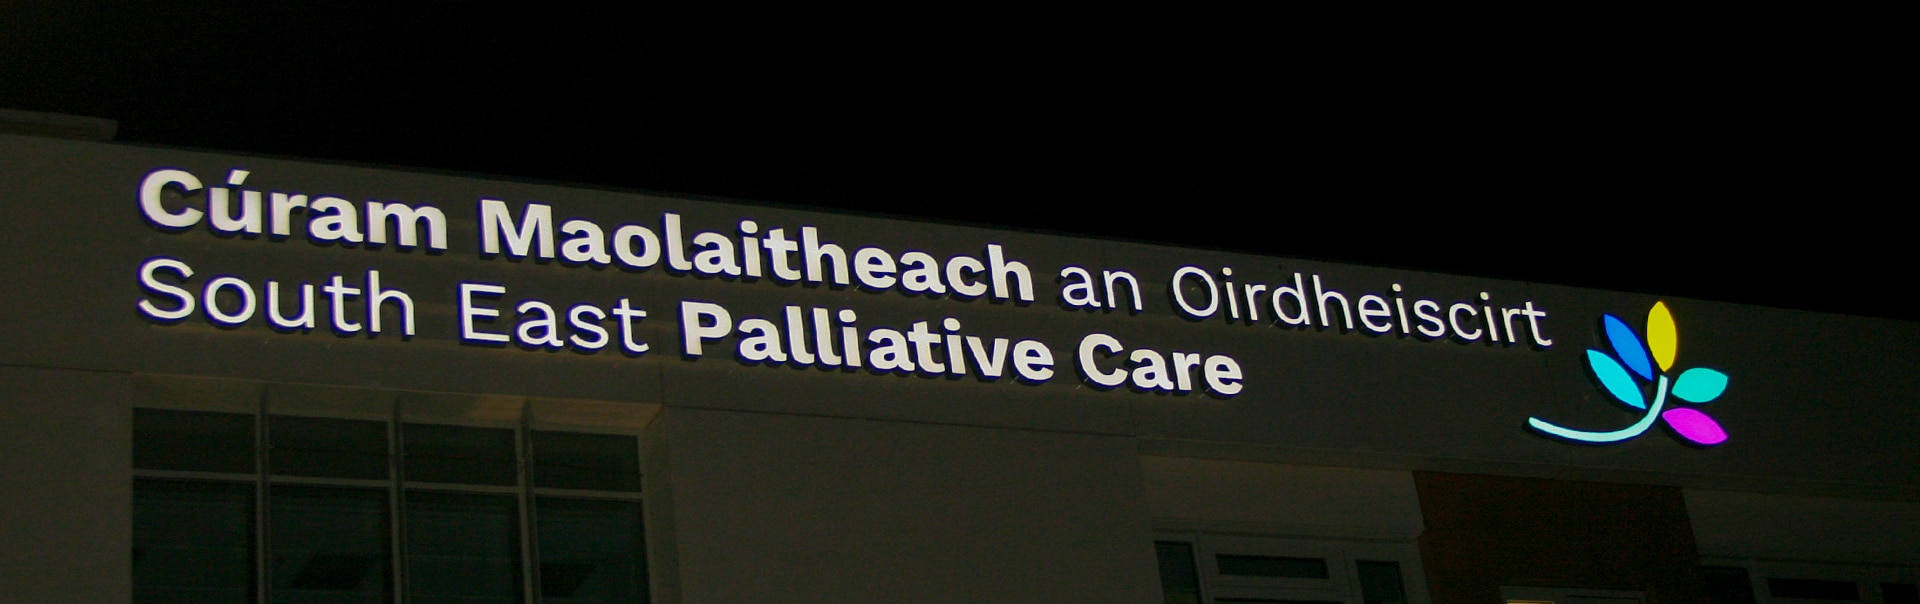 Facelit sign at night, South East Palliative Care, Waterford